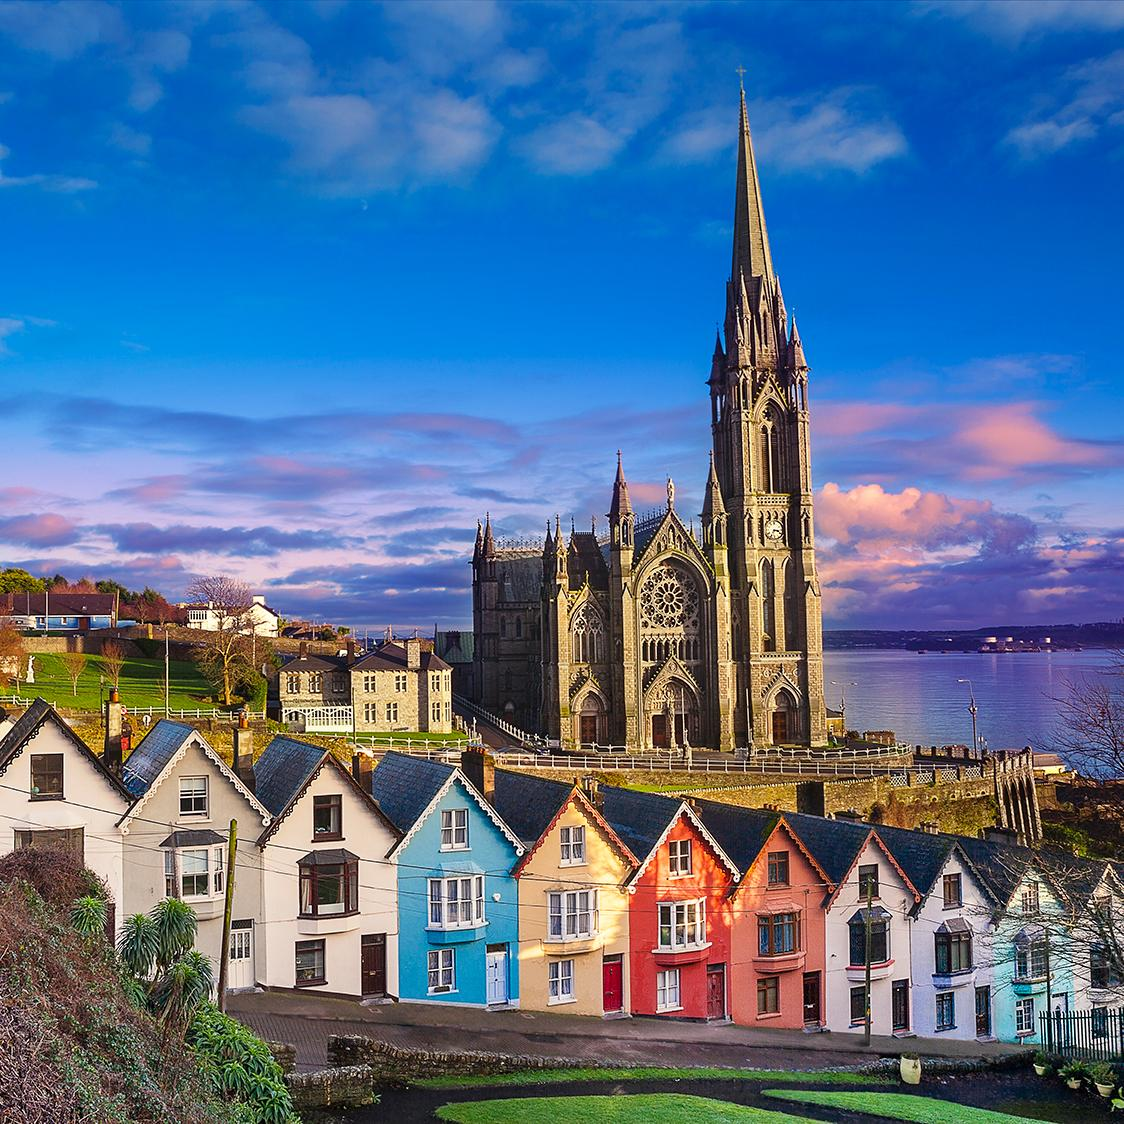 Take a tour through Ireland and stop by St. Coleman's Cathedral in Cobh